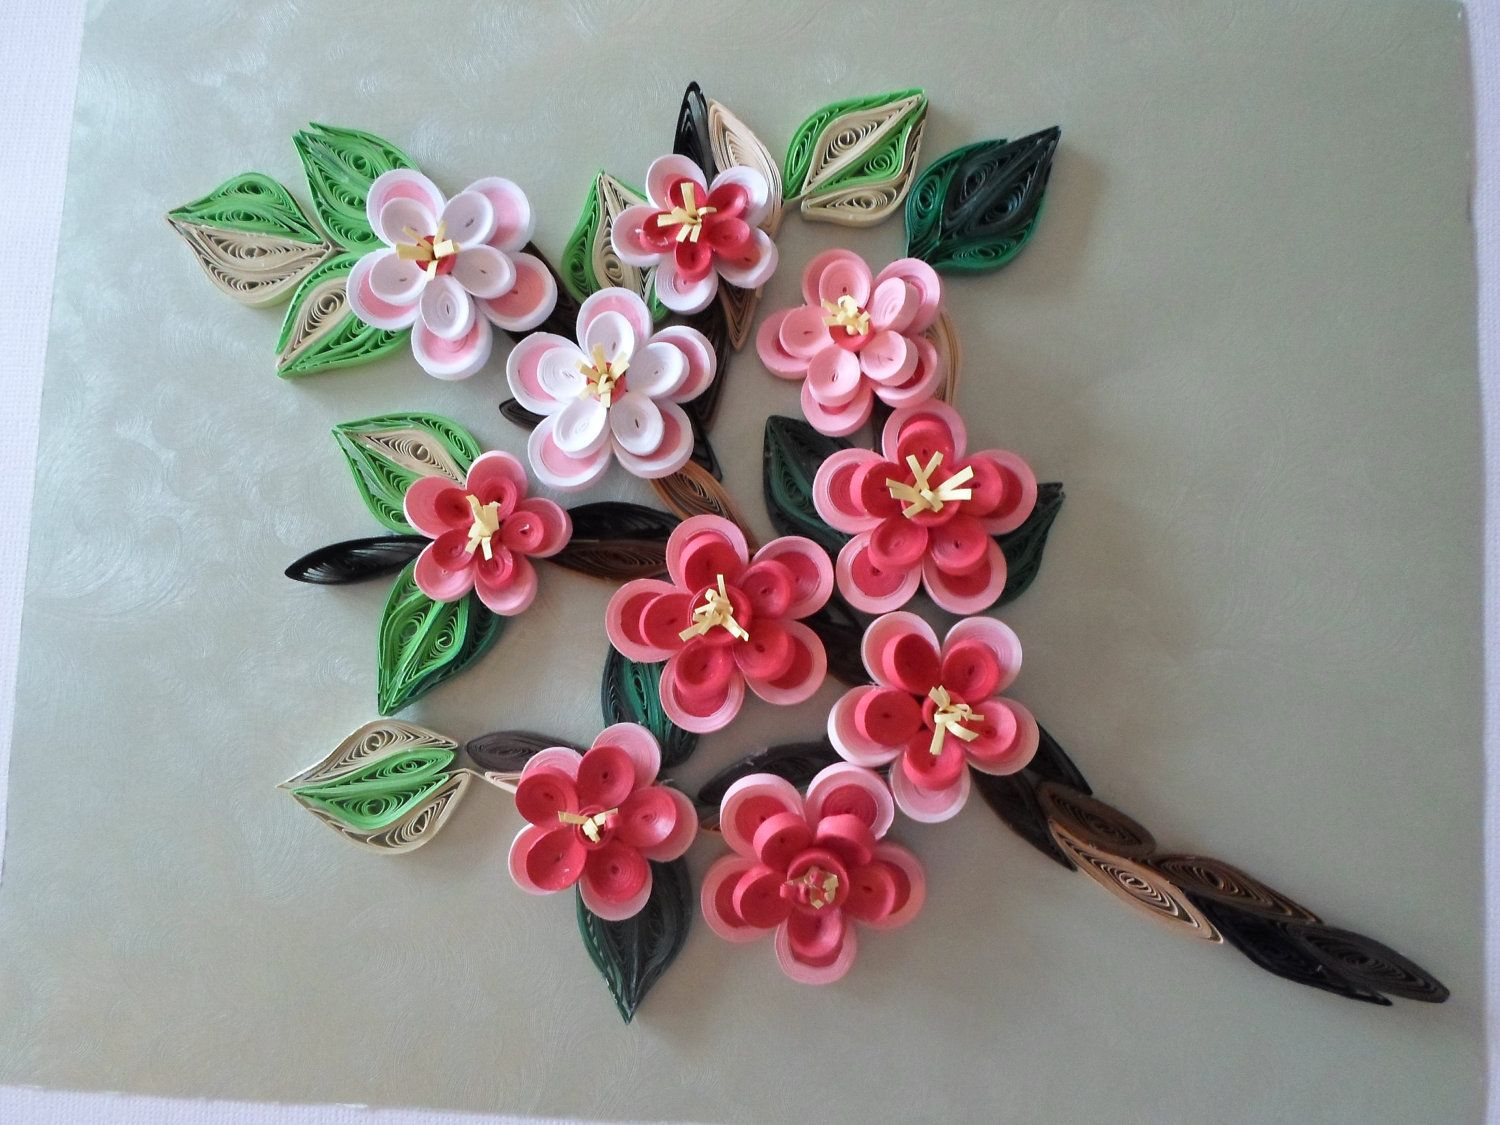 Shabby shic wall decor cherry blossom home decor quilled flowers